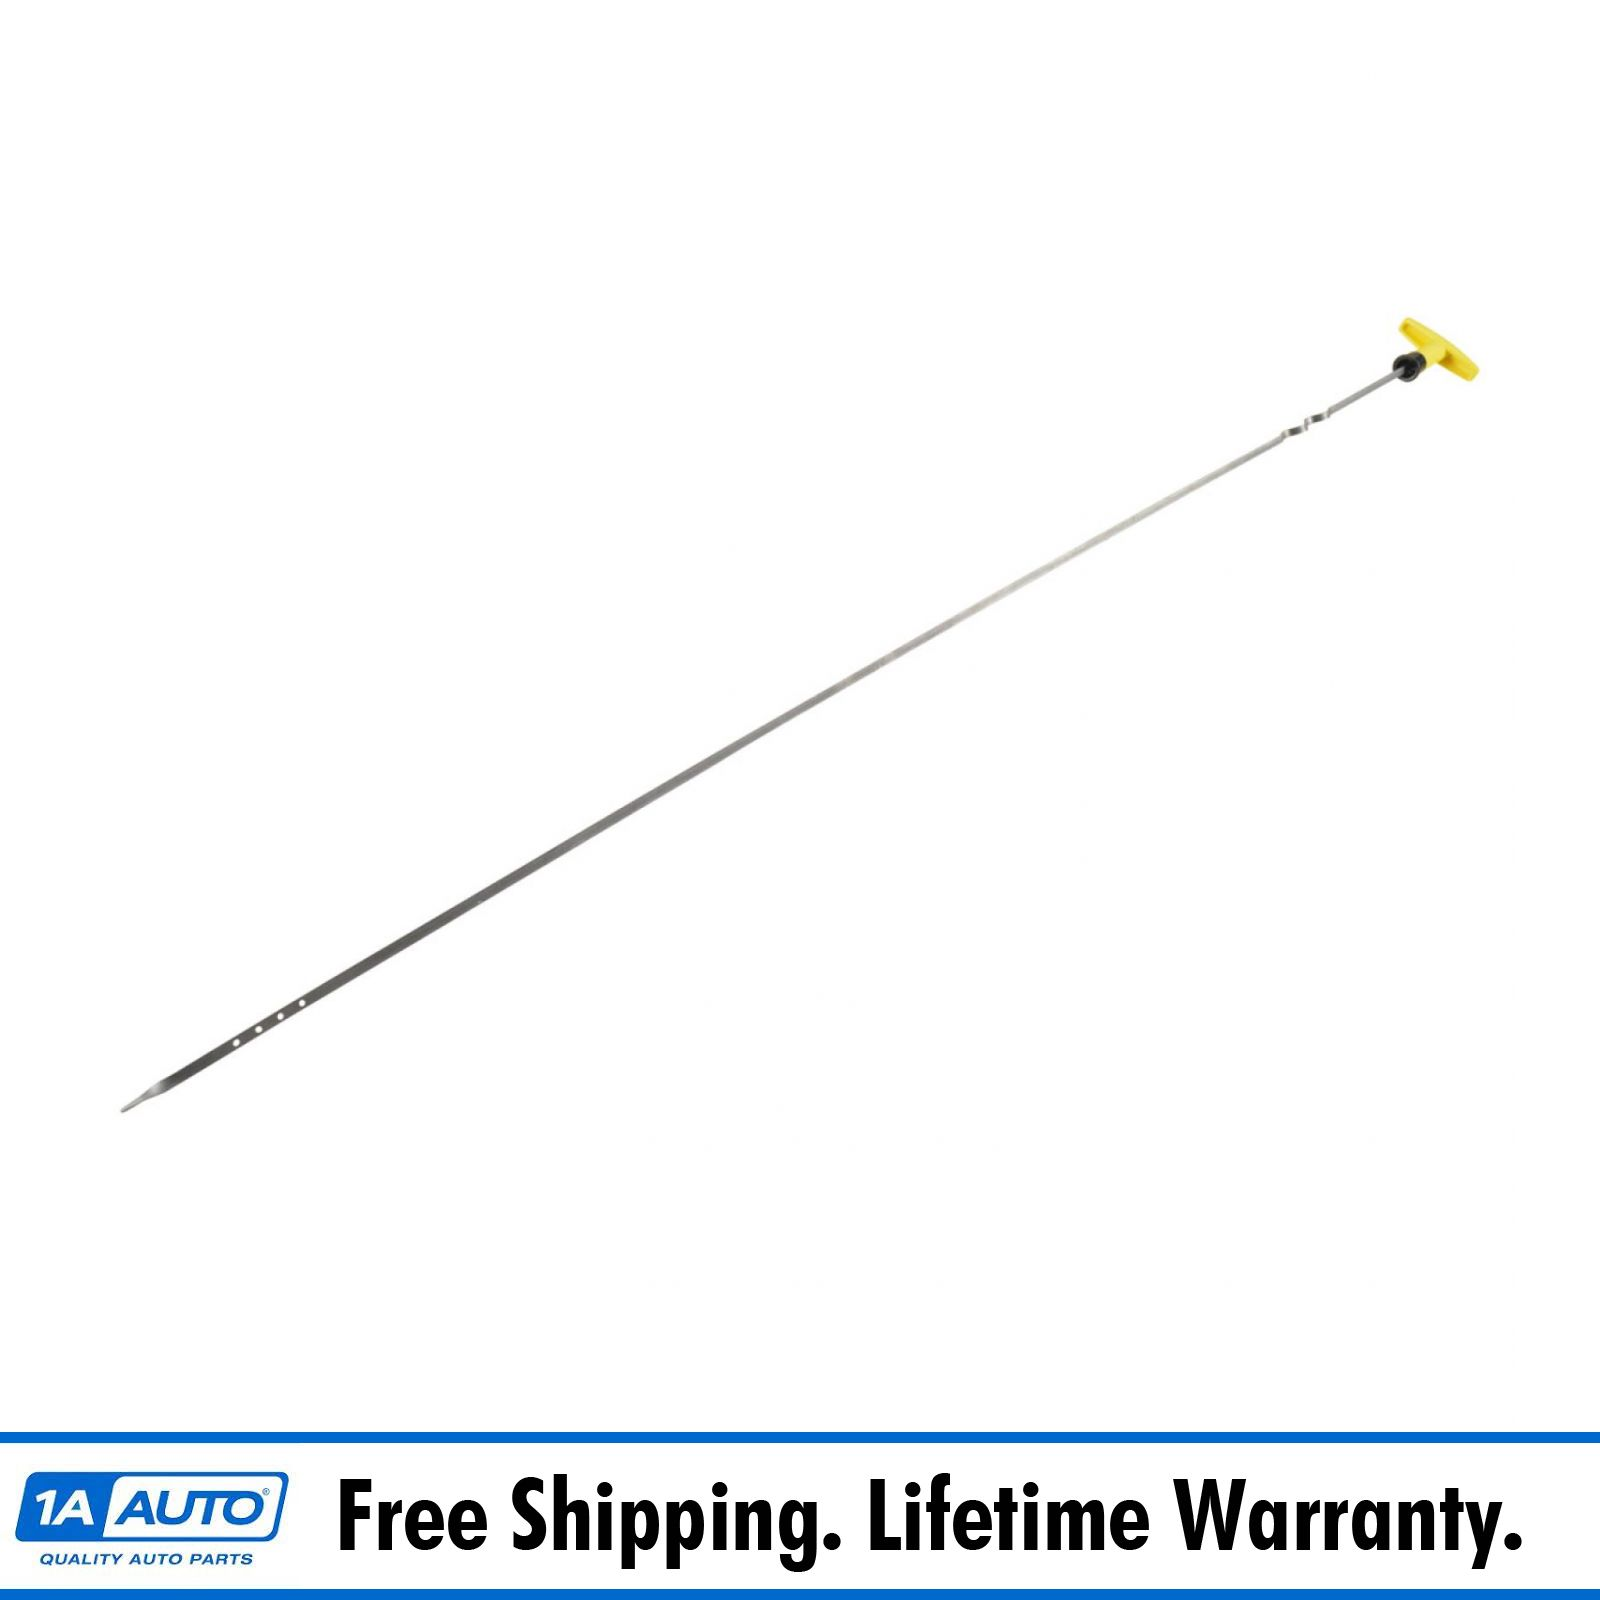 hight resolution of oem 10190973 engine oil level dipstick for chevy gm pickup truck suv new